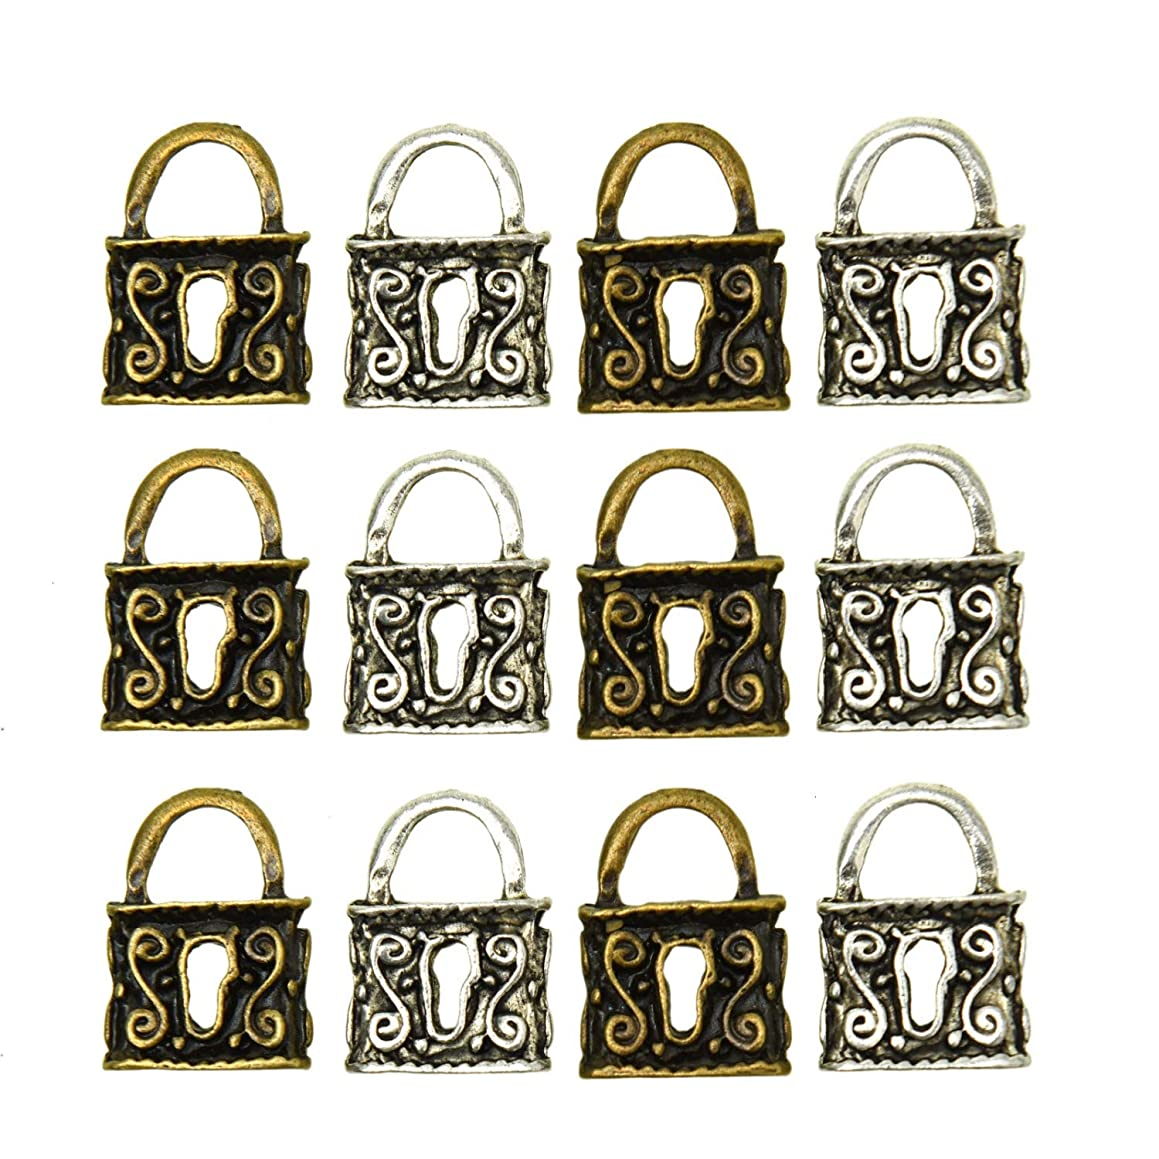 Monrocco 20 Pieces Lock Charms Pendants Lock Charms Bulk Jewelry Making Charms Lock Retro Supply for Crafting